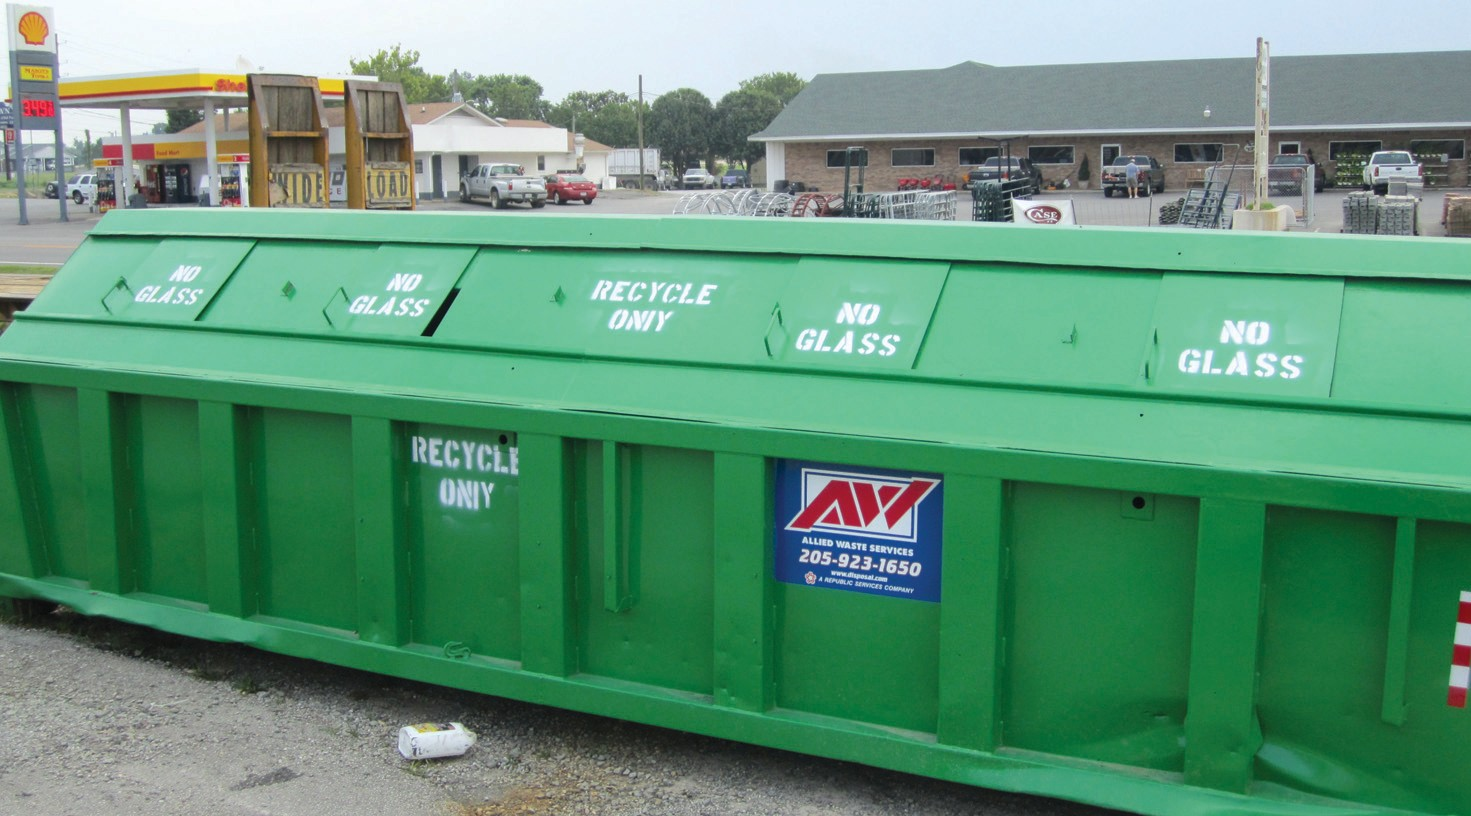 Big green recycle containers are placed for public access at the transfer station (landfill) on Armstrong Loop Road near Hayden, at the Blount County Water Authority on Ala 79 at Cleveland, and at Straight Mountain Volunteer Fire Department on county road 29.